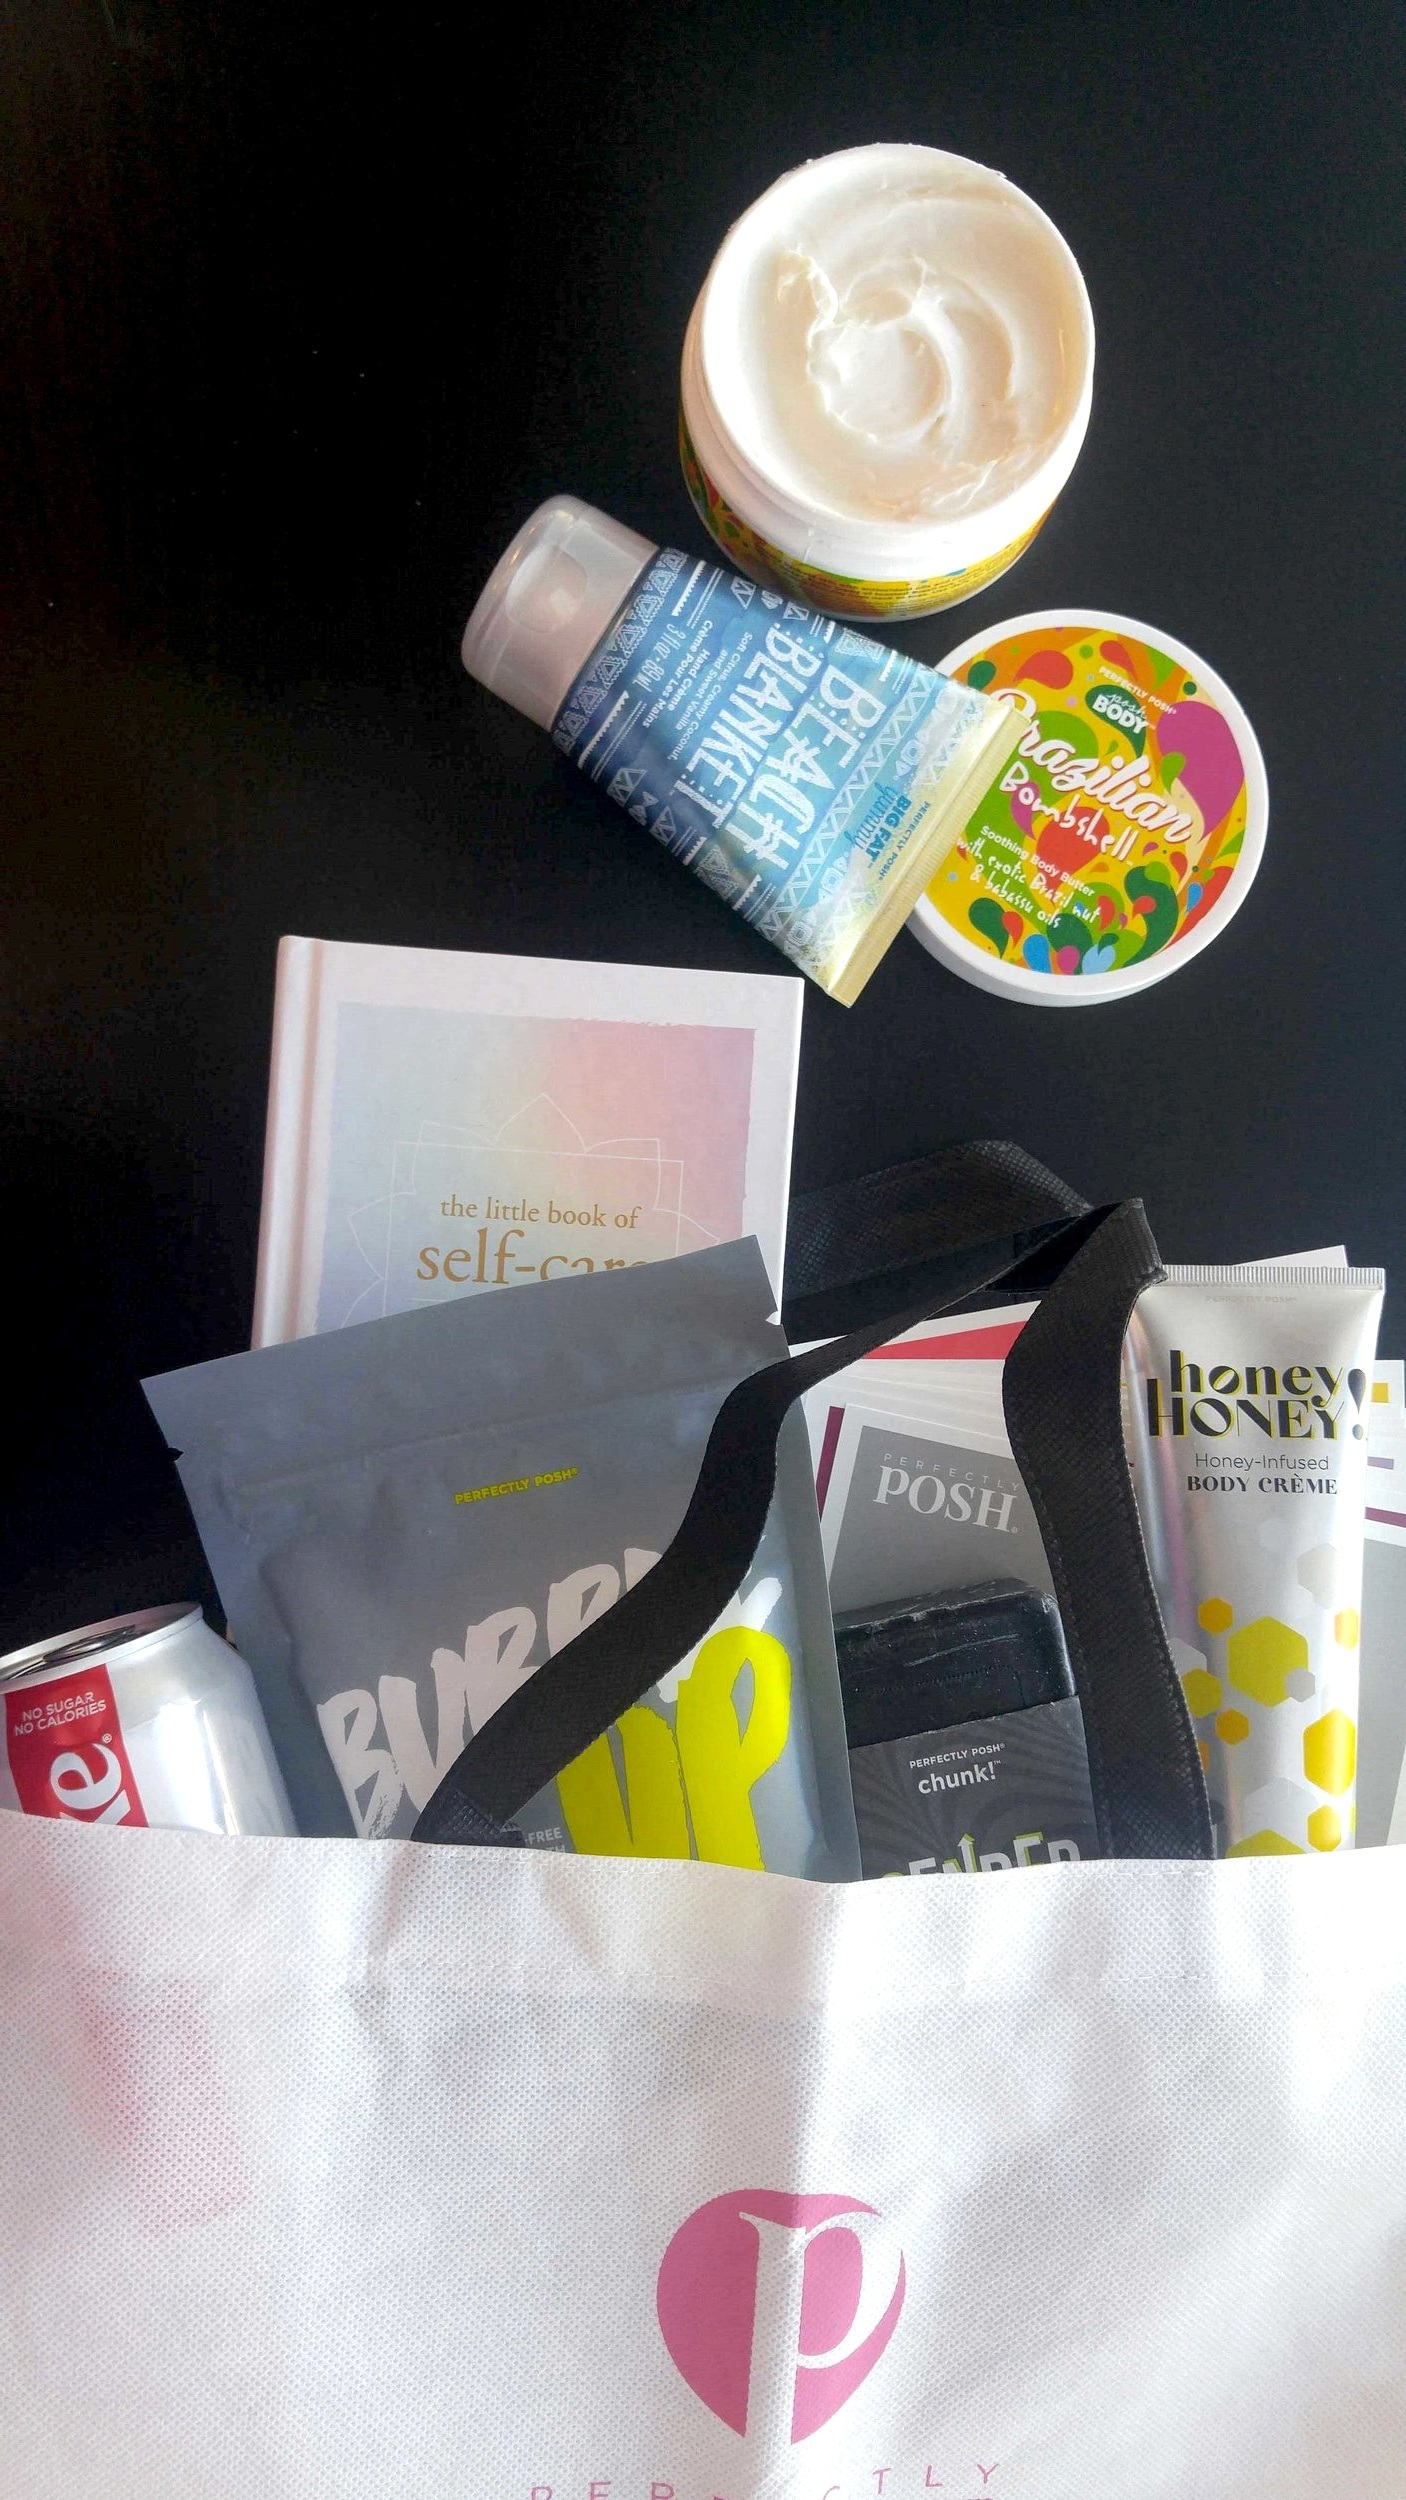 Beach Blanket Big Fat Yummy Hand Crème, Brazilian Bombshell Body Butter, Bubble Up All Mixd Up bath salts, Gender Bender Chunk Big Bath Bar, Honey Honey! Body Crème, Posh Reading cards, Posh tote bag, Jessica Christine Vezino's bag, Jessica Christine Vezino's favorite Posh products